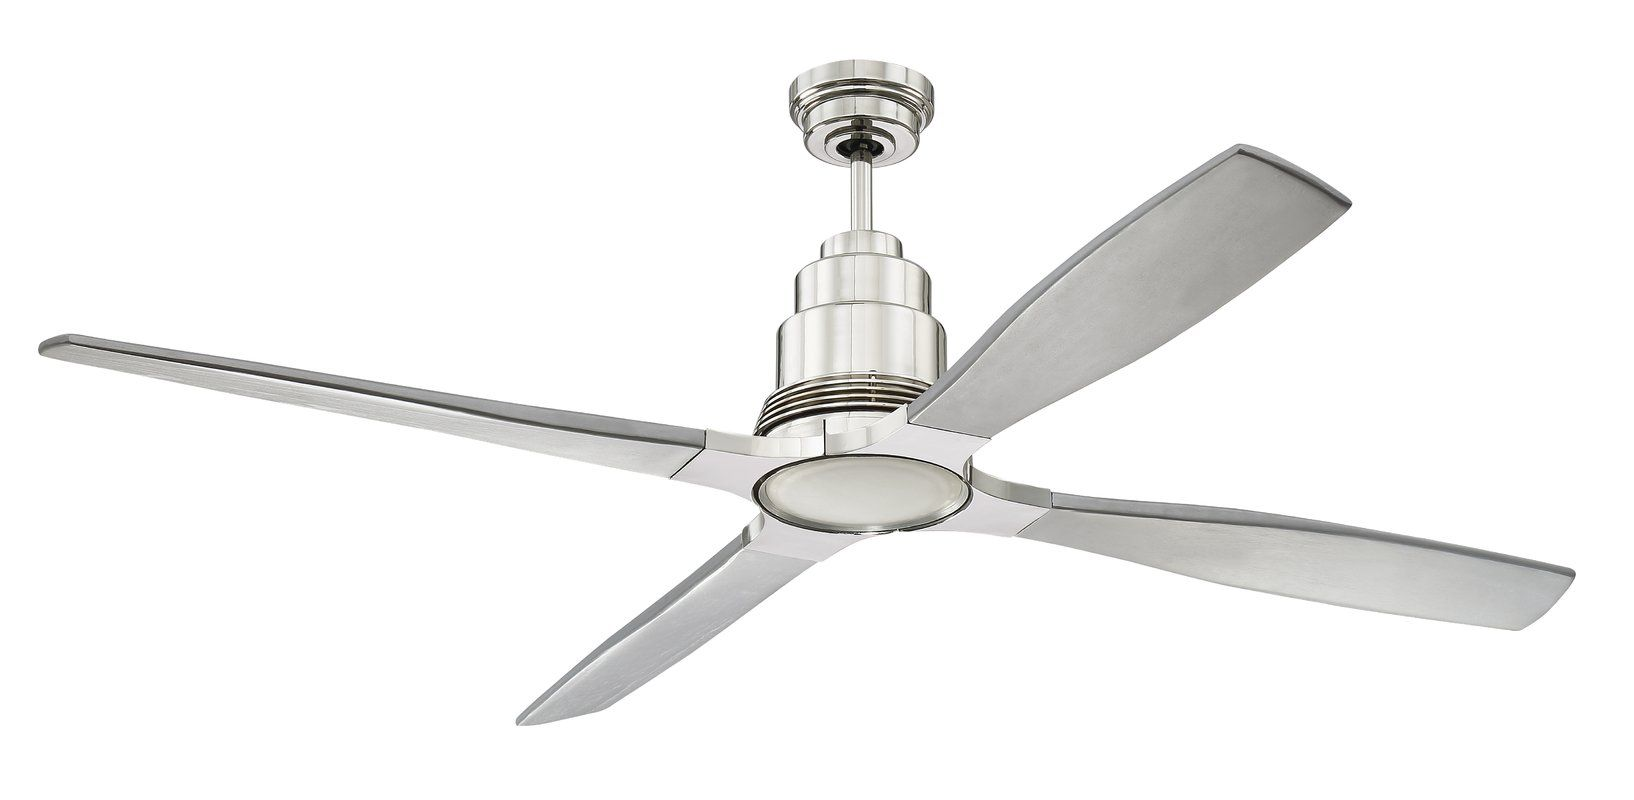 60 Karina 4 Blade Ceiling Fan With Remote With Images 60